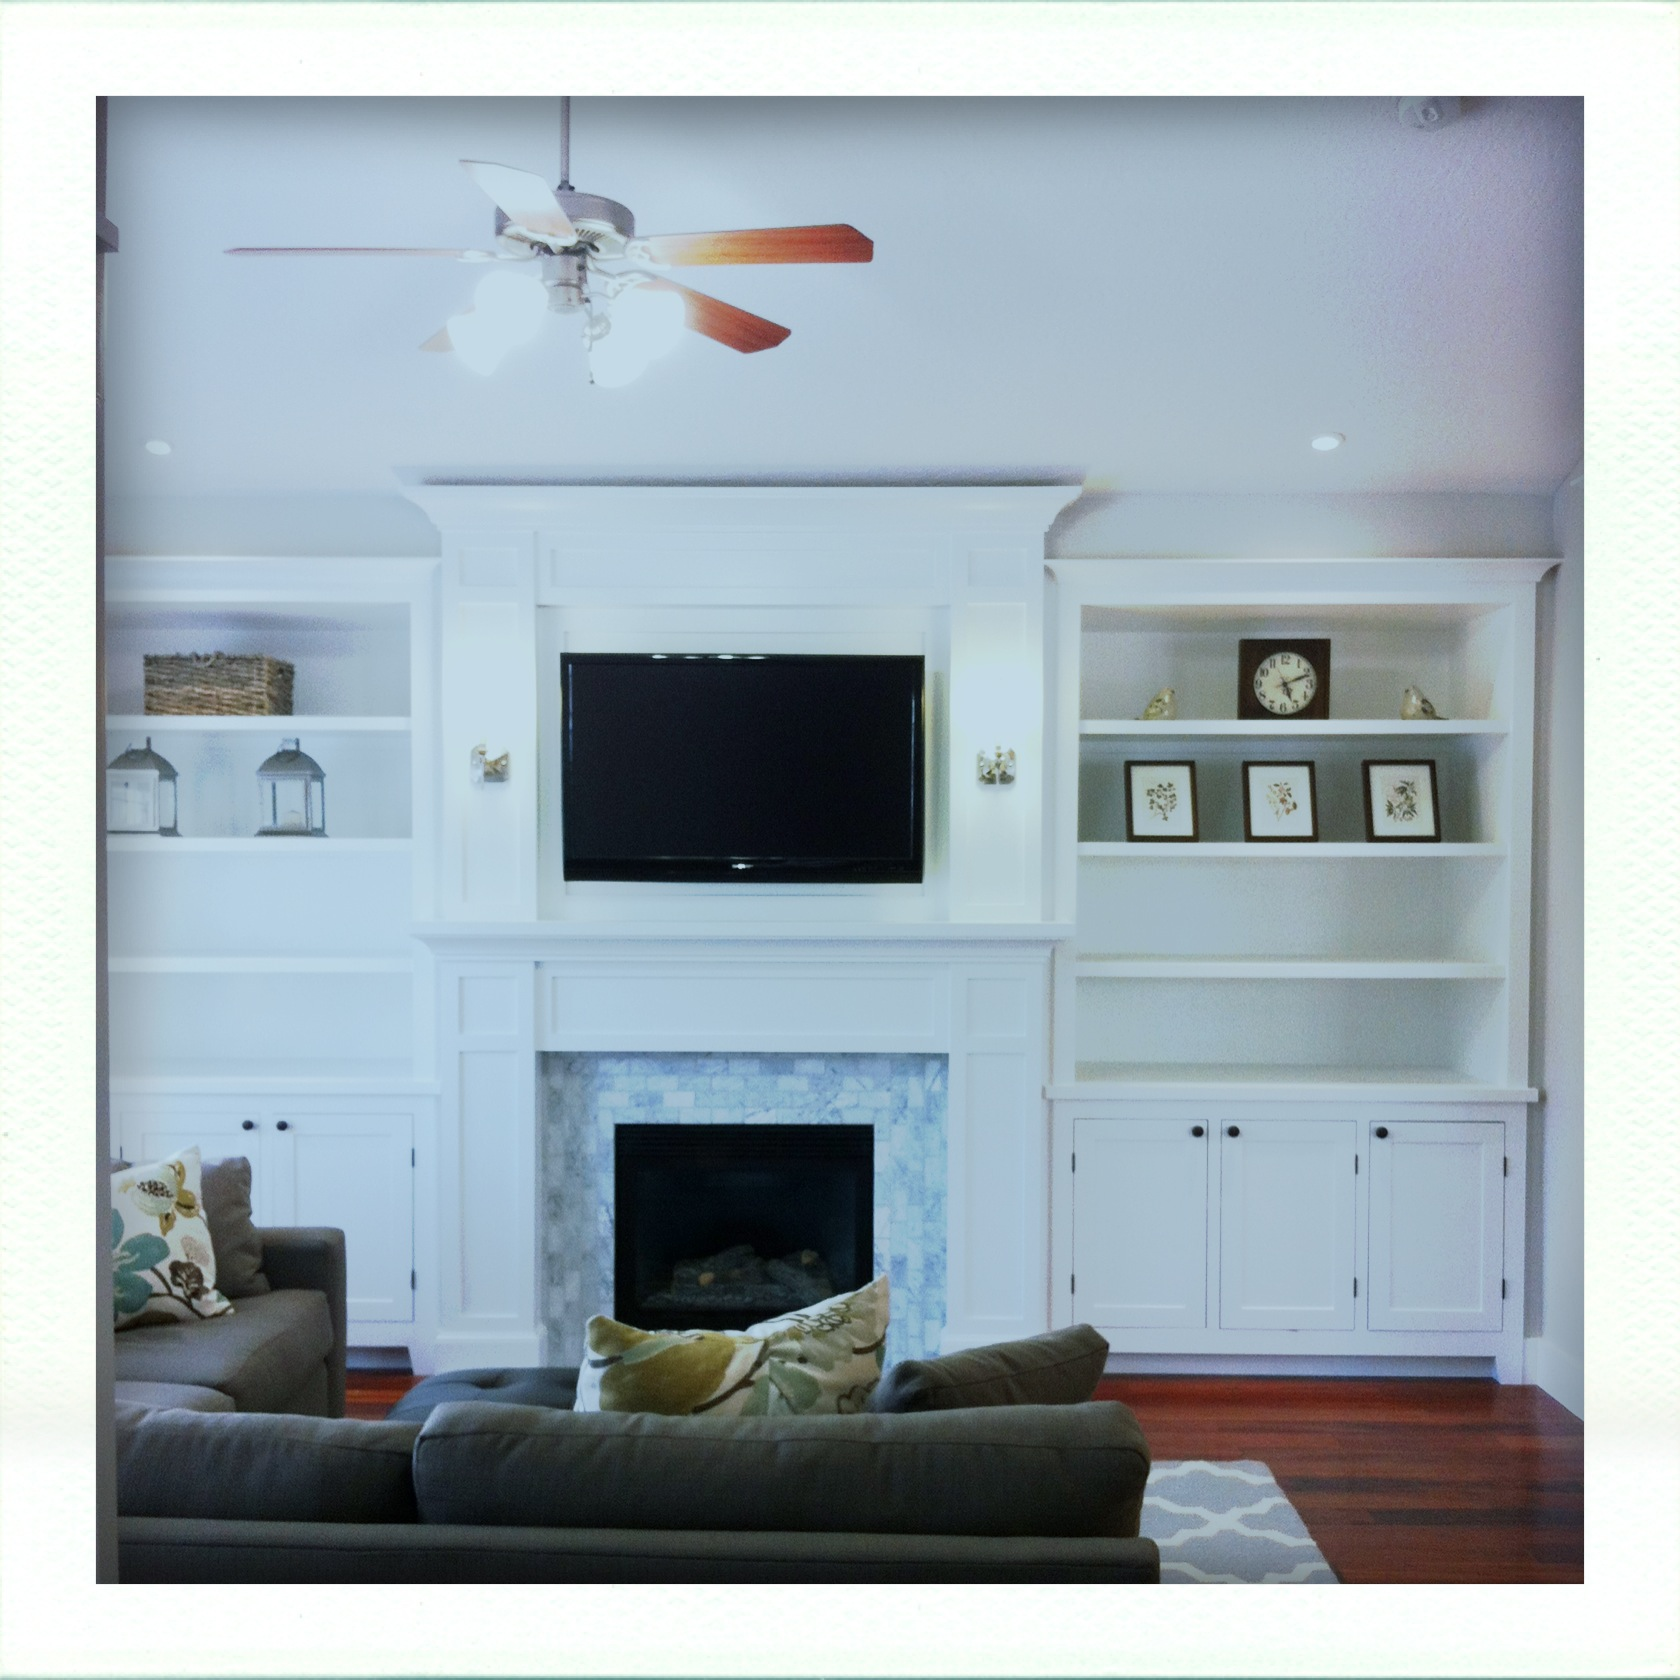 Tv Over Fireplace On Pinterest Tv Over Fireplace Framed Tv And Fireplaces